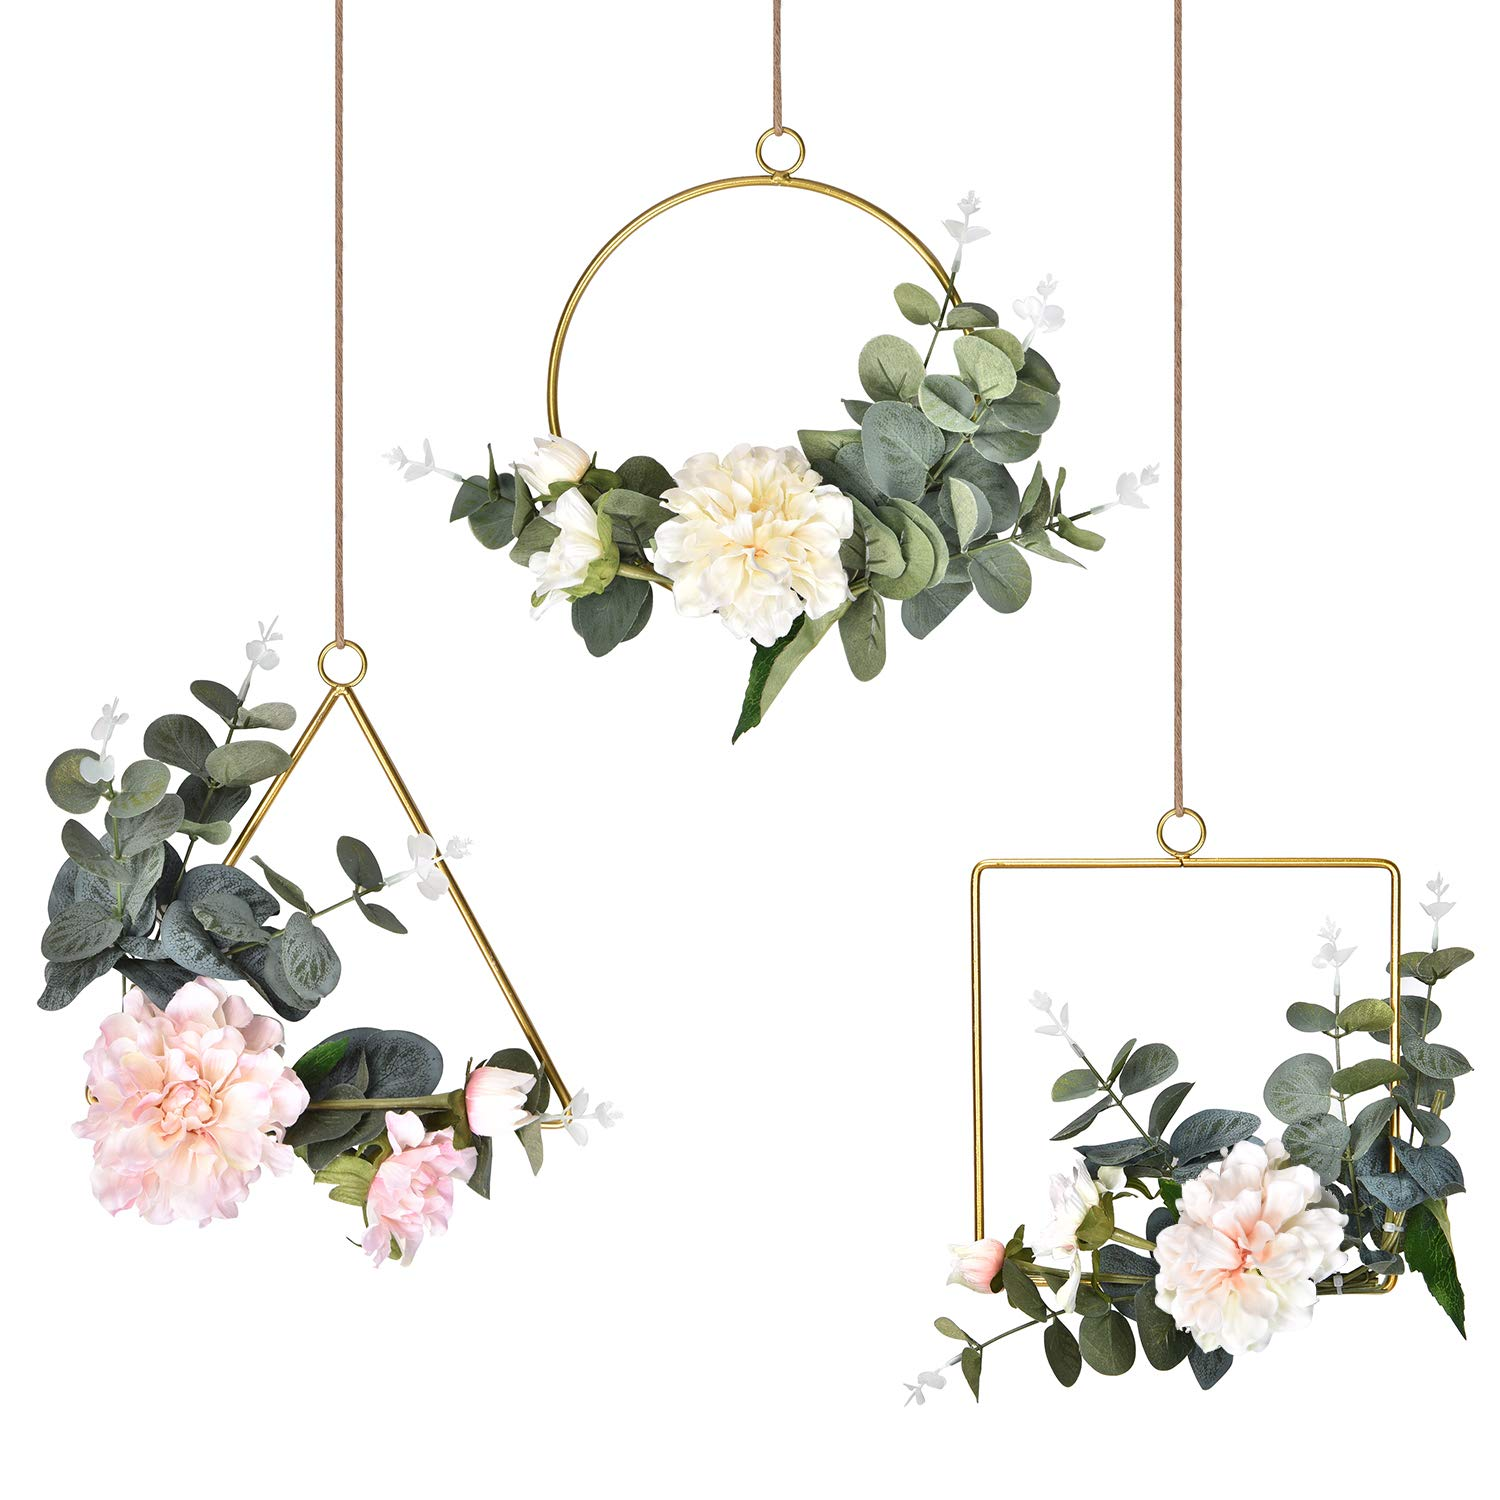 Dolicer Floral Hoop Wreath, Geometric Wire Round Triangle Square Hoop Frame of Artificial Peony Flower and Eucalyptus Vine Wreath for Wedding Backdrop Wall Garden Balcony Home Decor, 3 Pcs, White